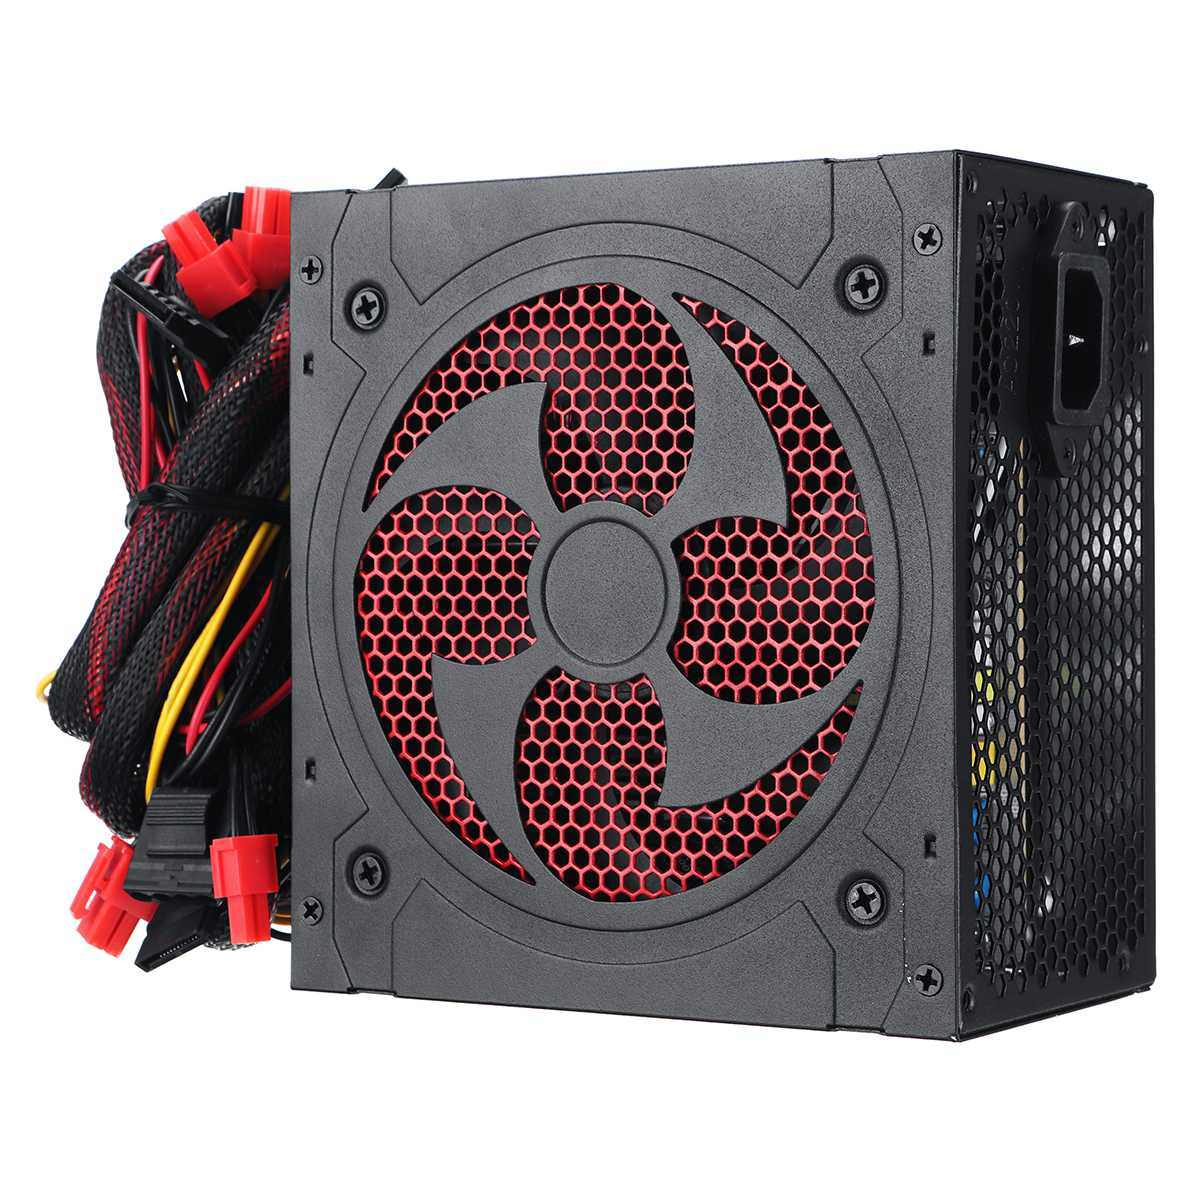 Hitam 1000W Power Supply PFC Silent Fan ATX 20pin 12V Komputer PC SATA PC Gaming Power Supply untuk intel Amd Komputer